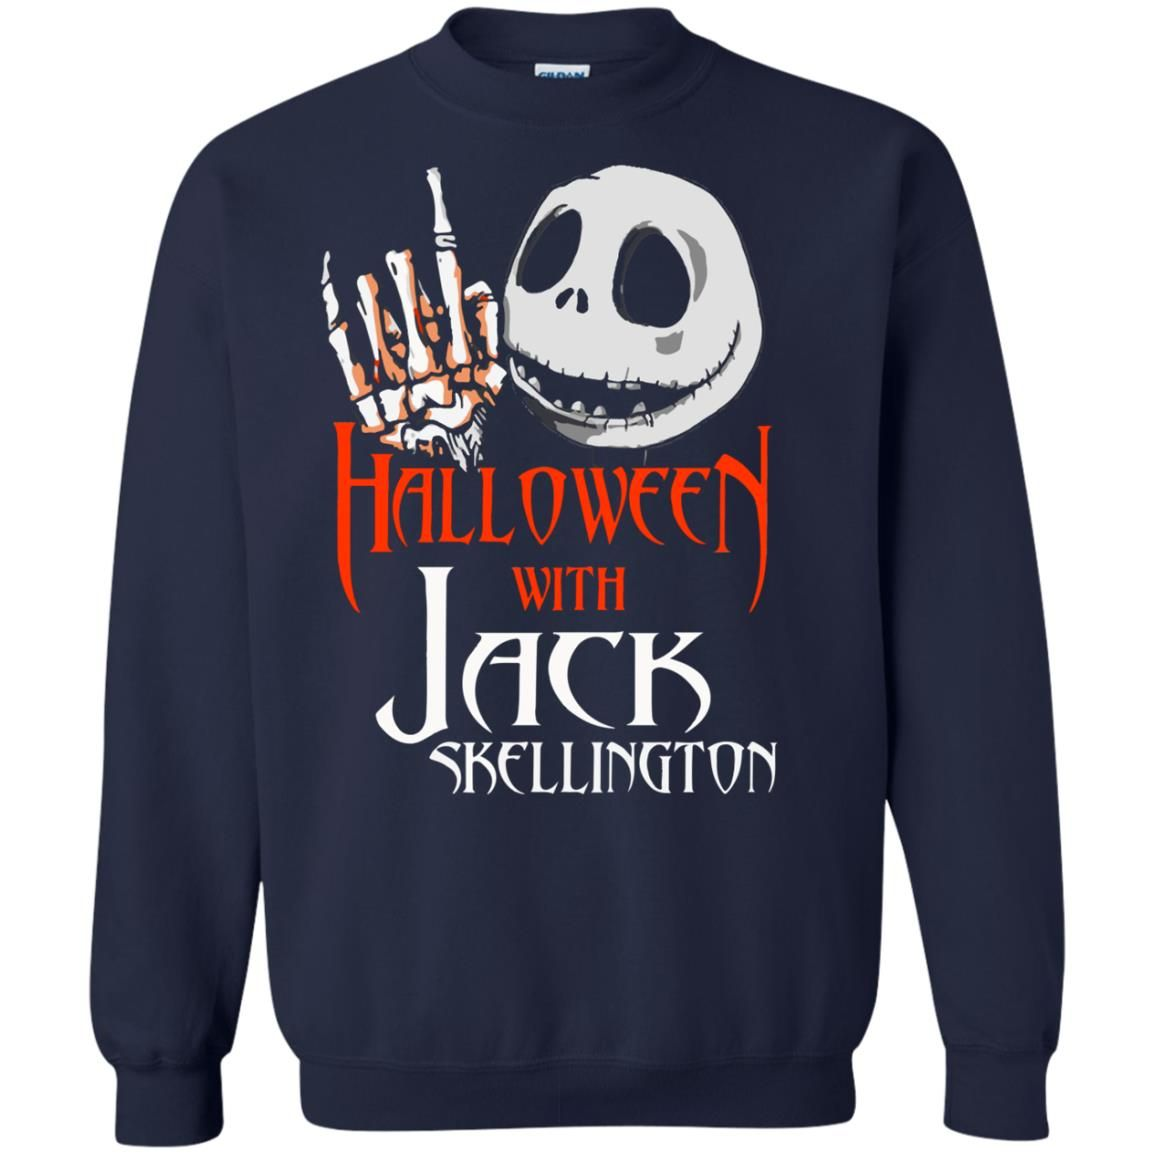 image 1383 - Halloween with Jack Skellington shirt, tank top, sweater